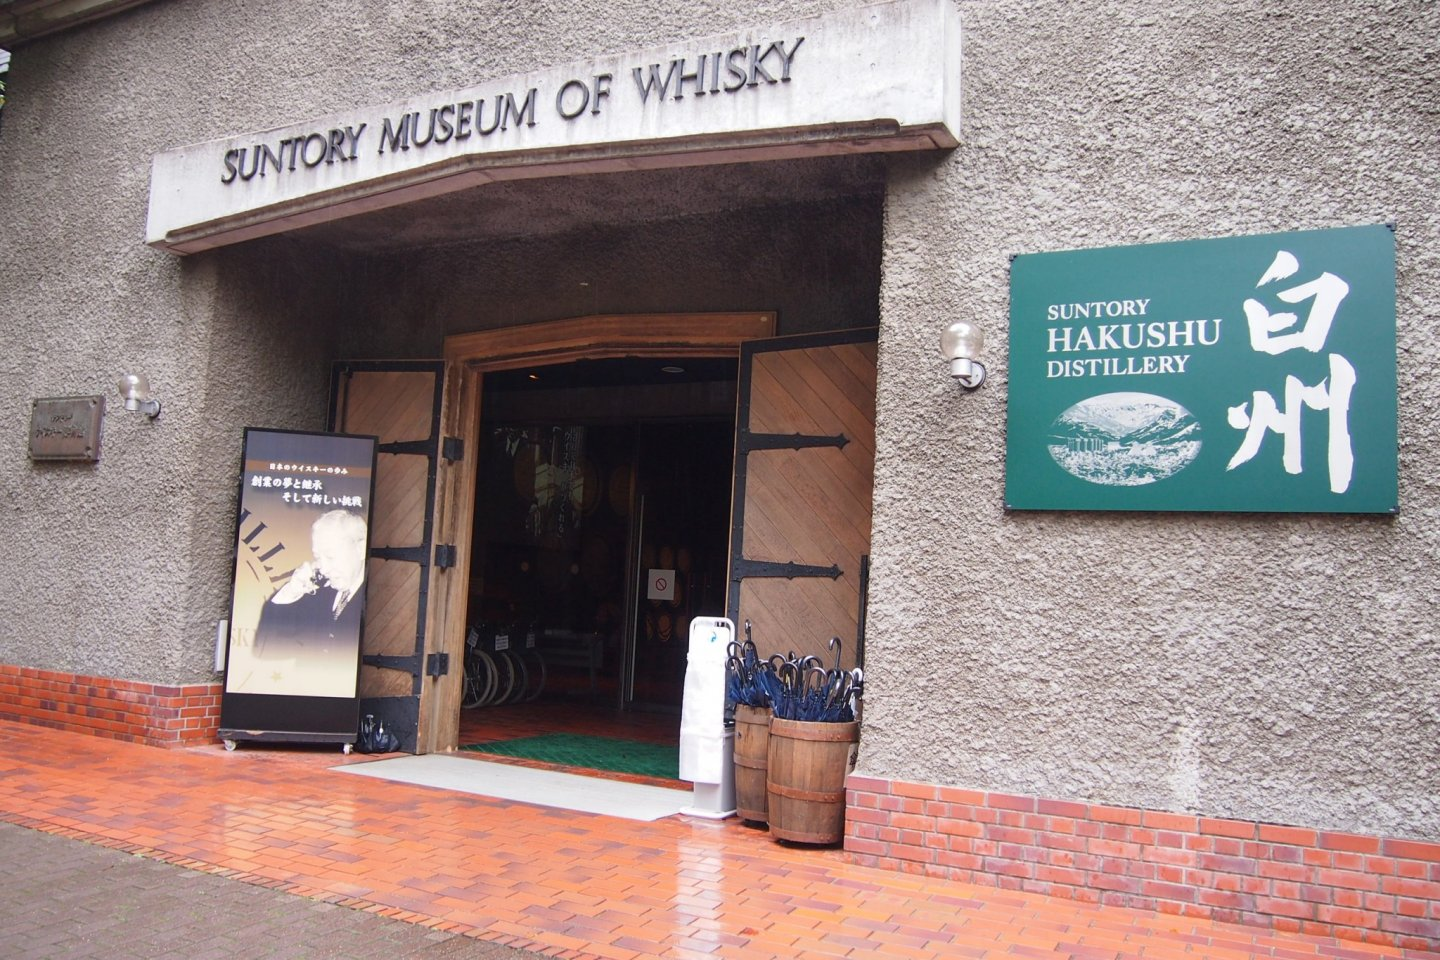 The Suntory Museum of Whiskey, where artifacts that showed the company's history, successes and failures were displayed.